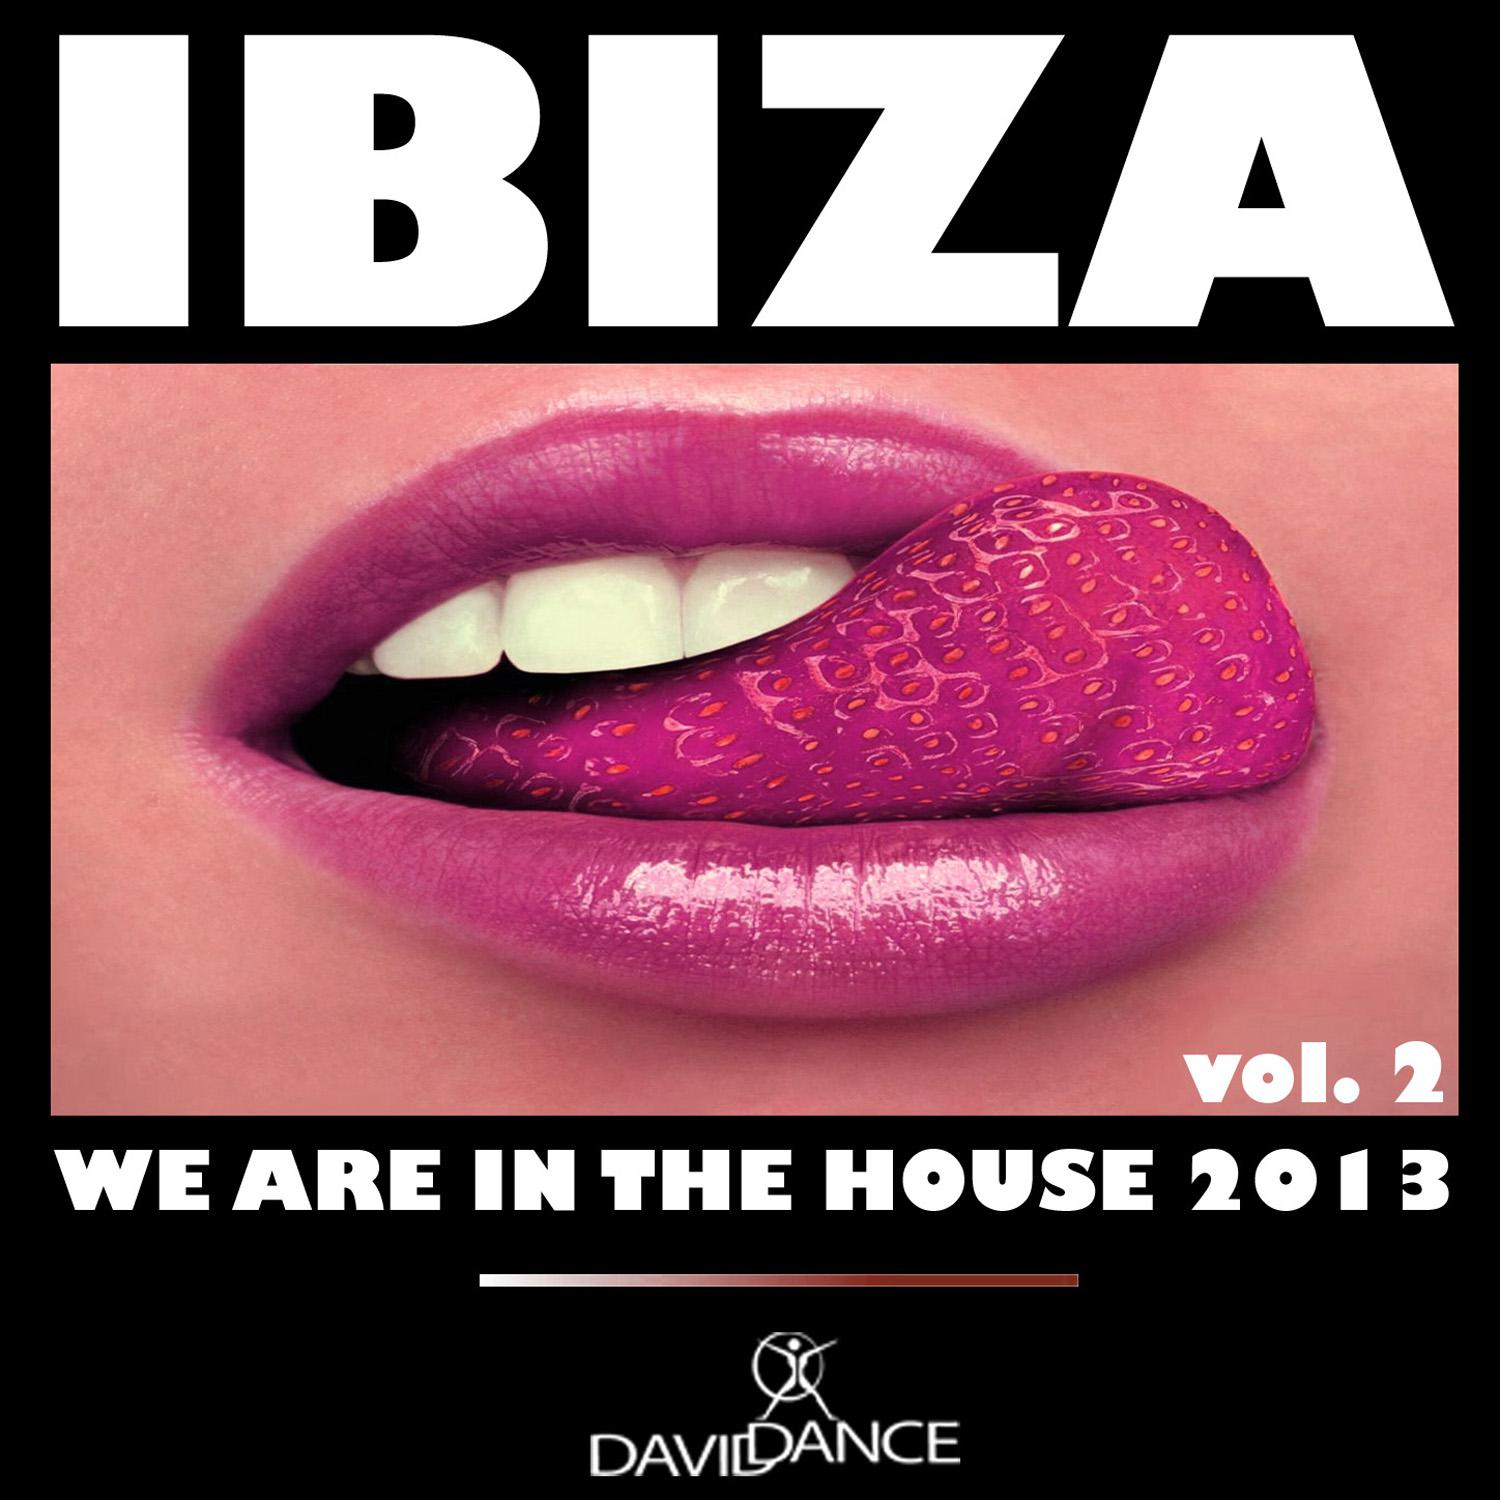 Ibiza 2013 - We Are in the House Vol 2 (2013) [Multi]